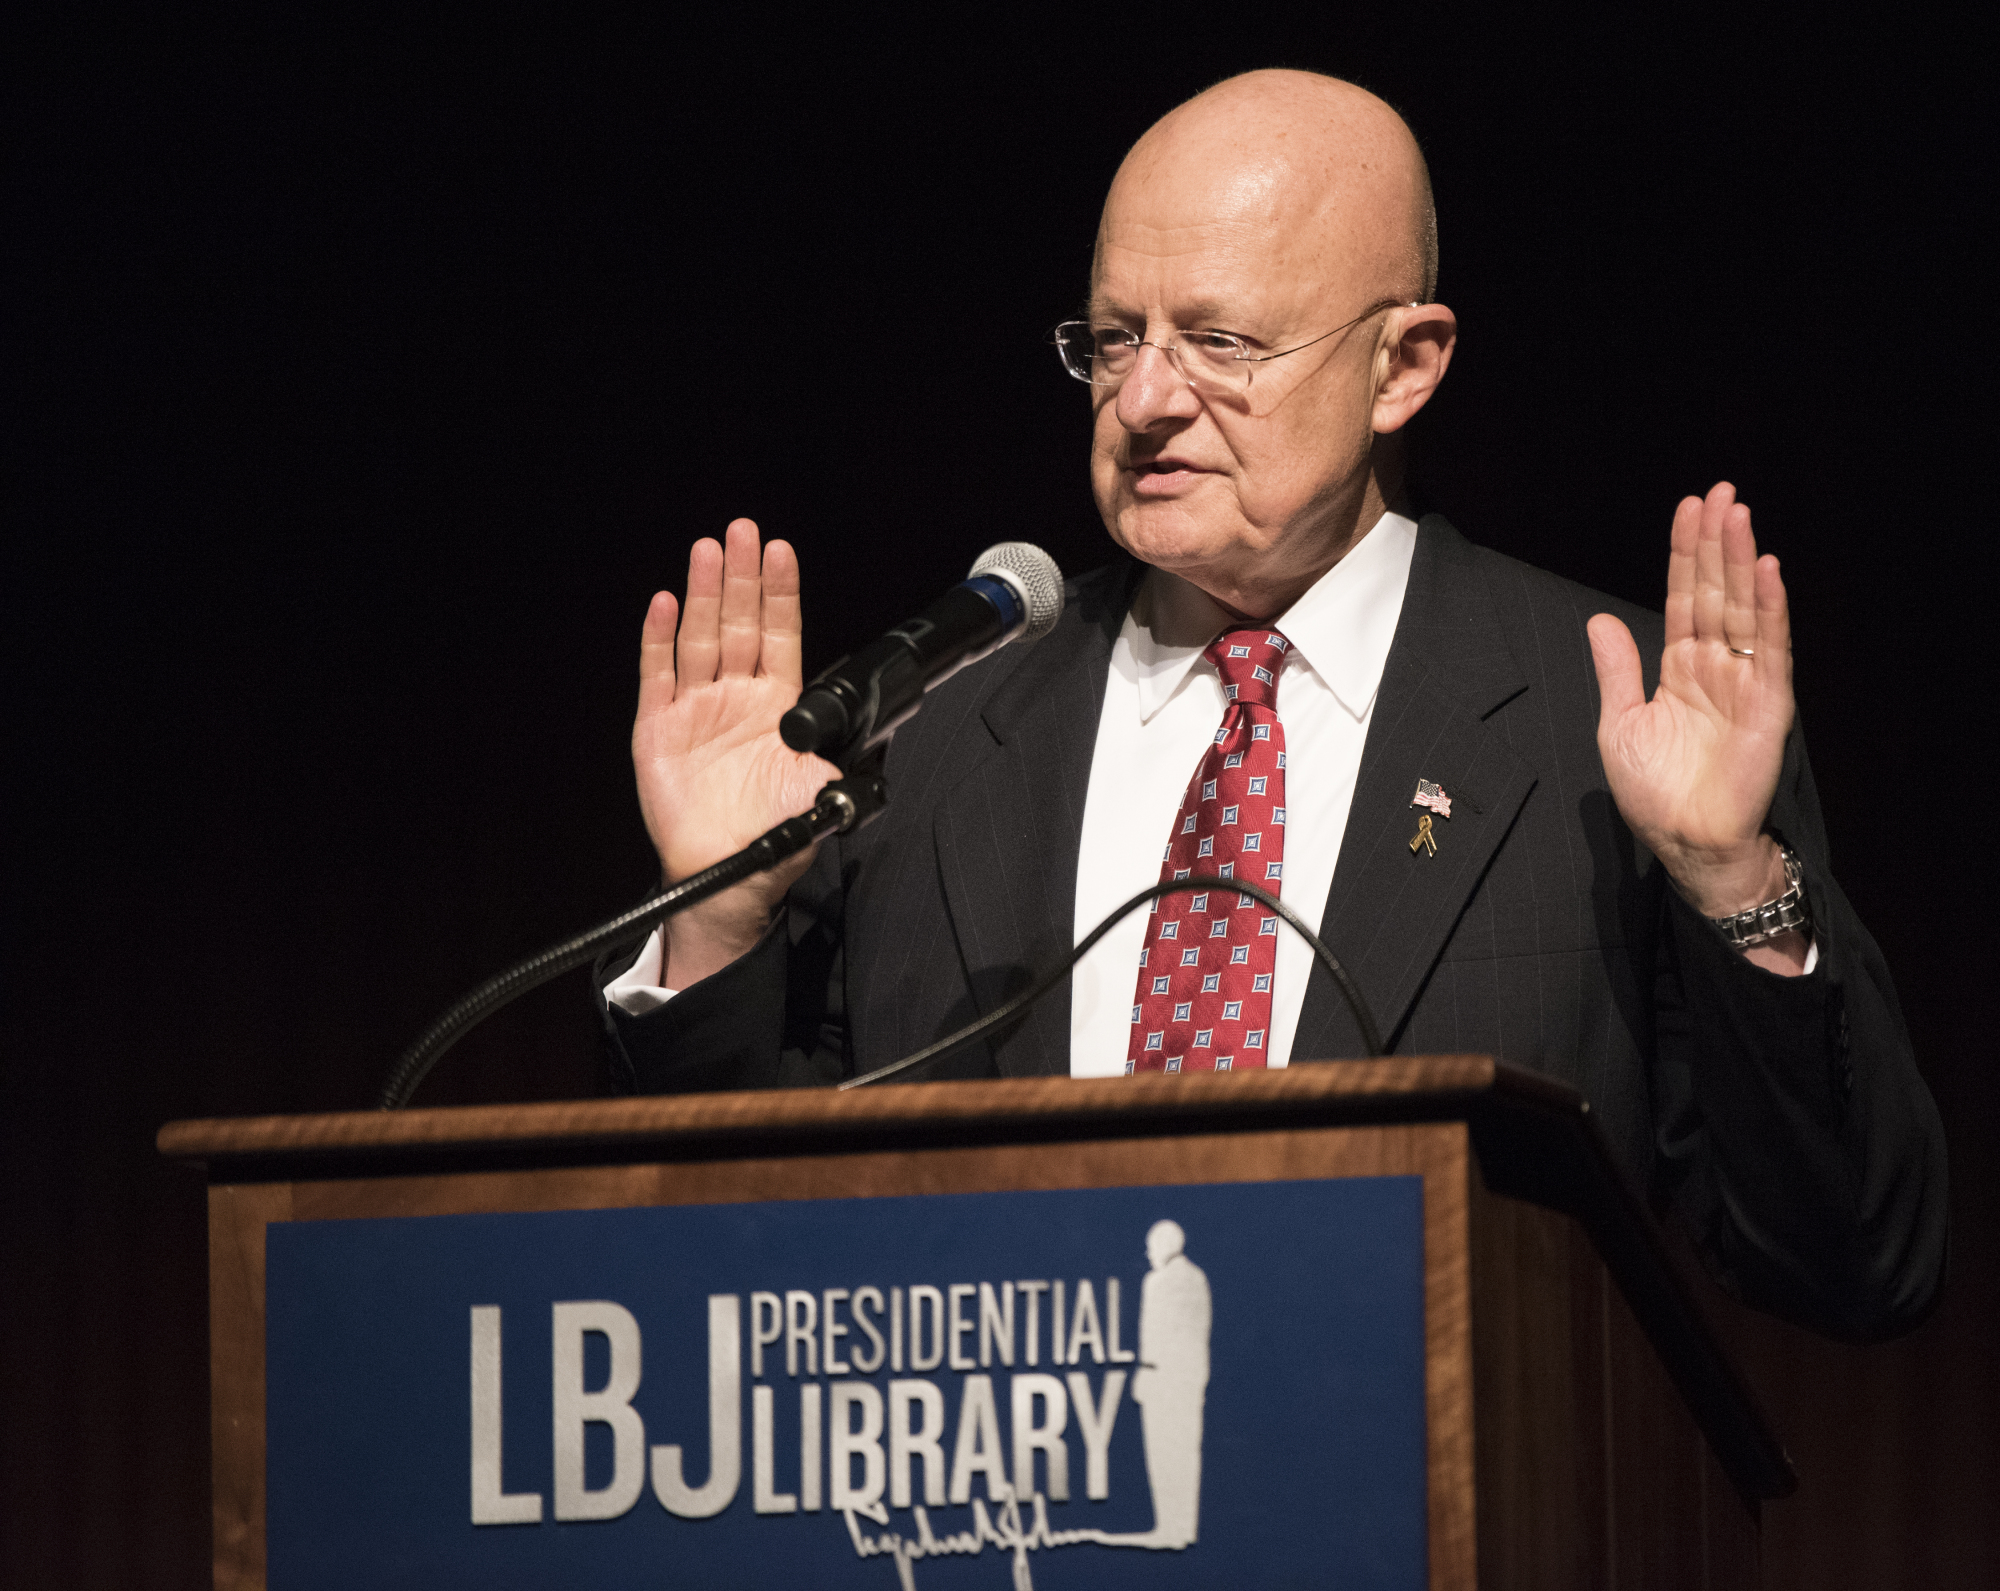 James R. Clapper an Rednerpult